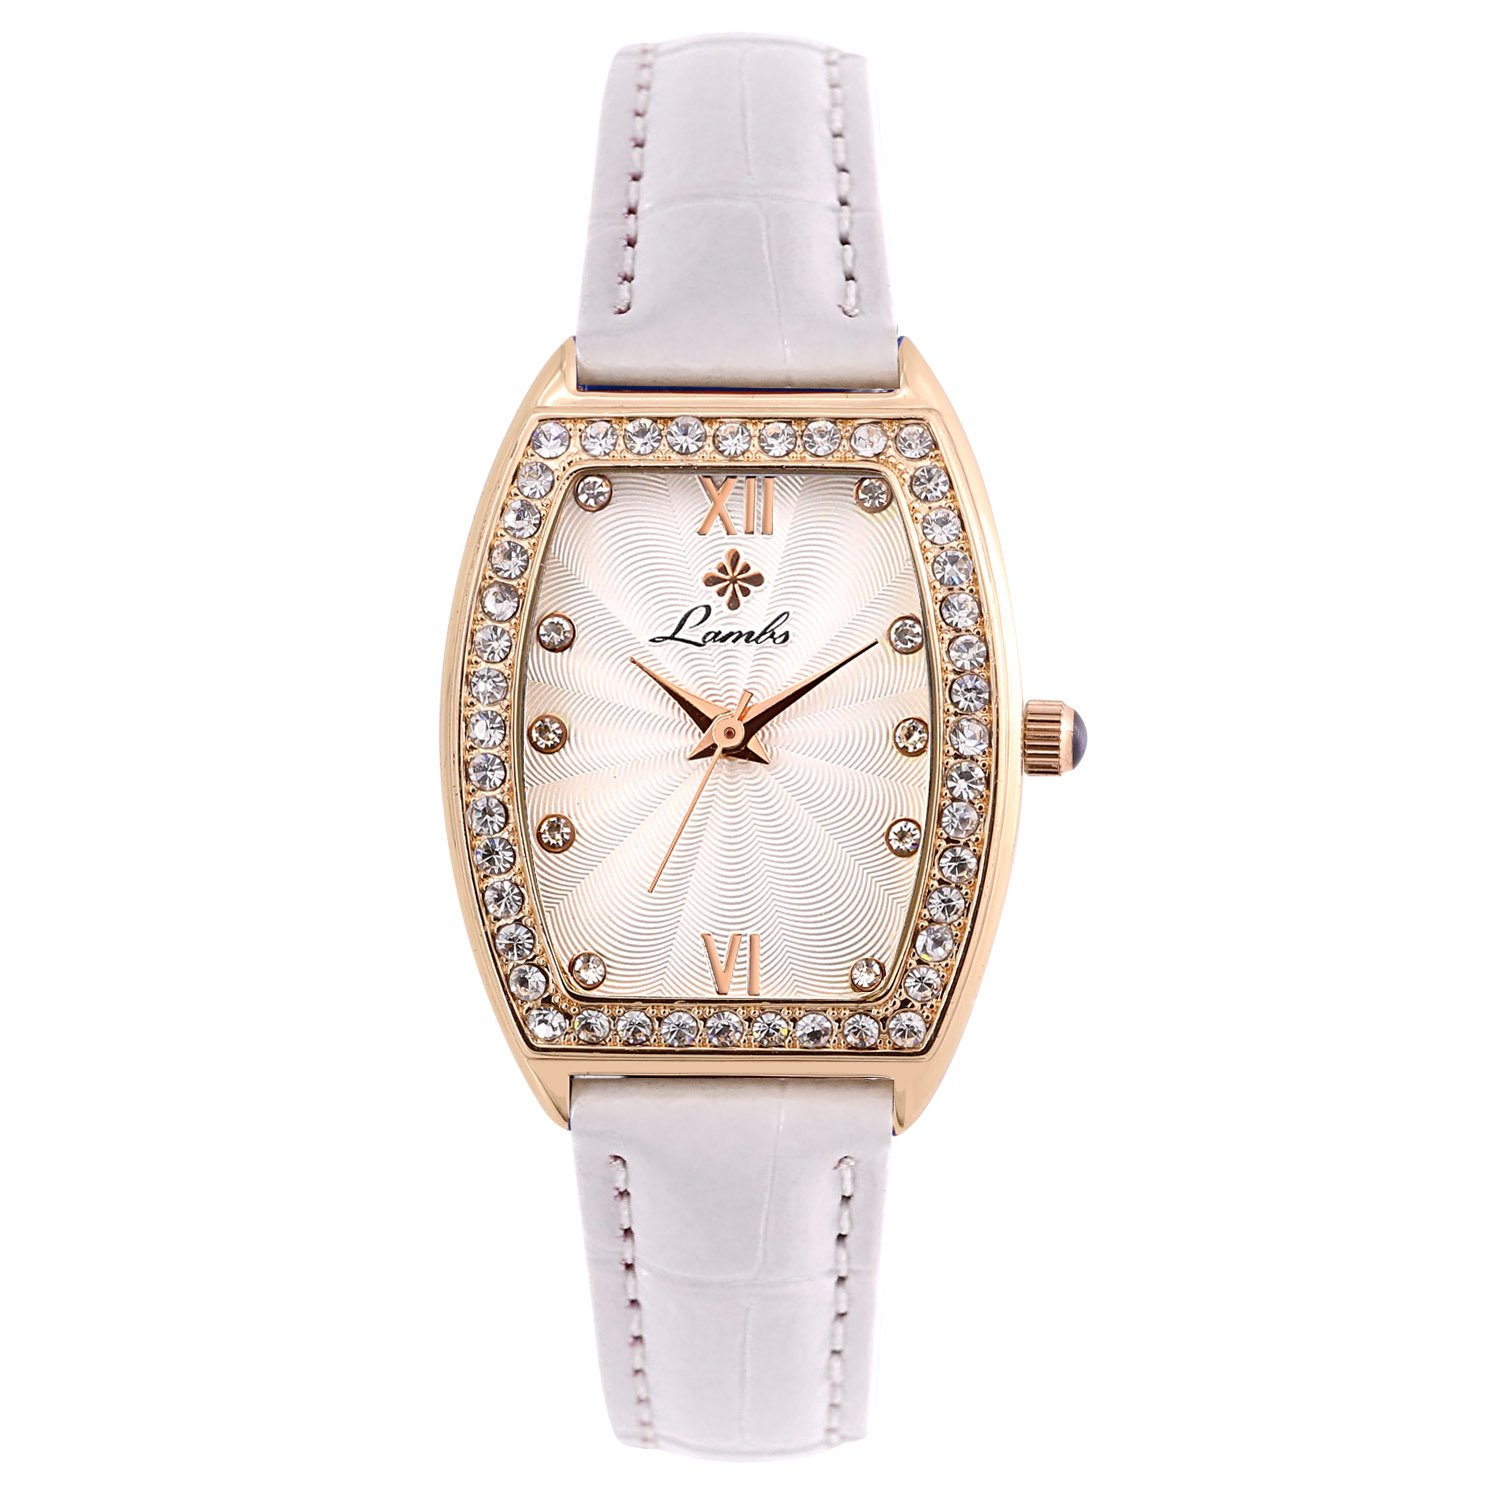 Womens Watch,Lambo Fashion Elegant Casual Waterproof Quartz Wrist Watches for Ladies and Girls with Comfortable Genuine Leather Band (White)